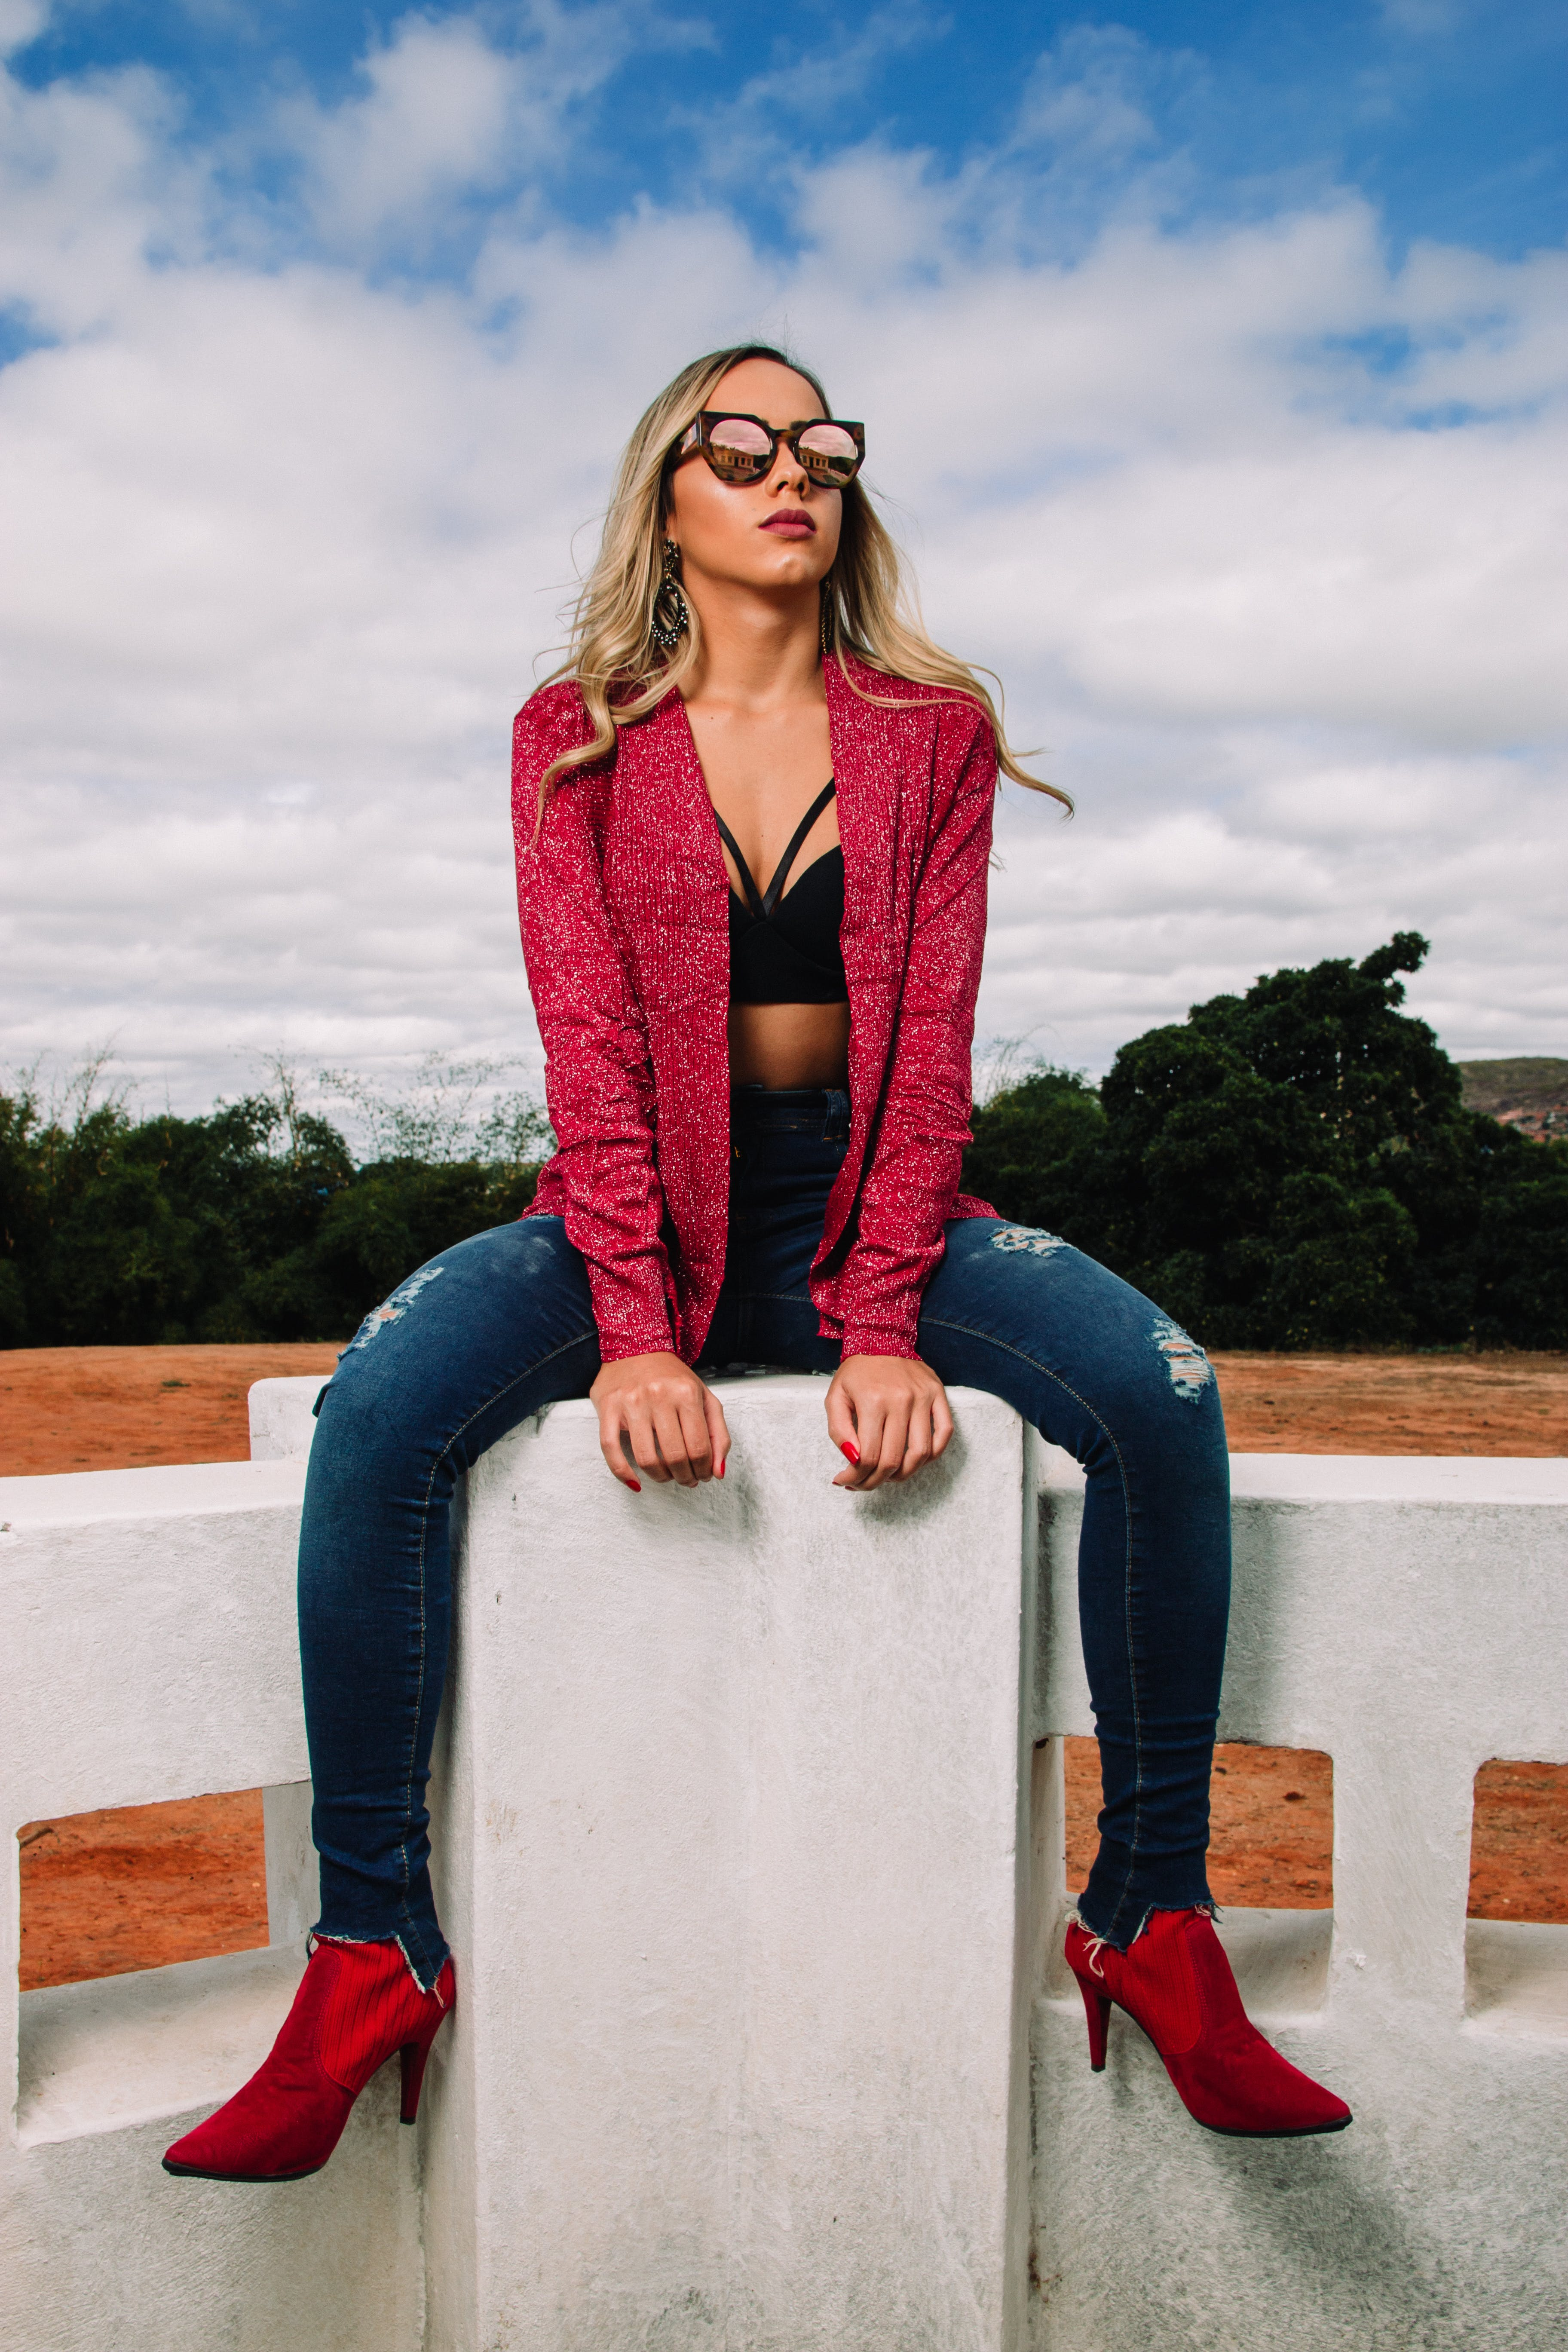 Woman Wearing Red Jacket and Distressed Blue Denim Skinny Jeans Sitting on Bench